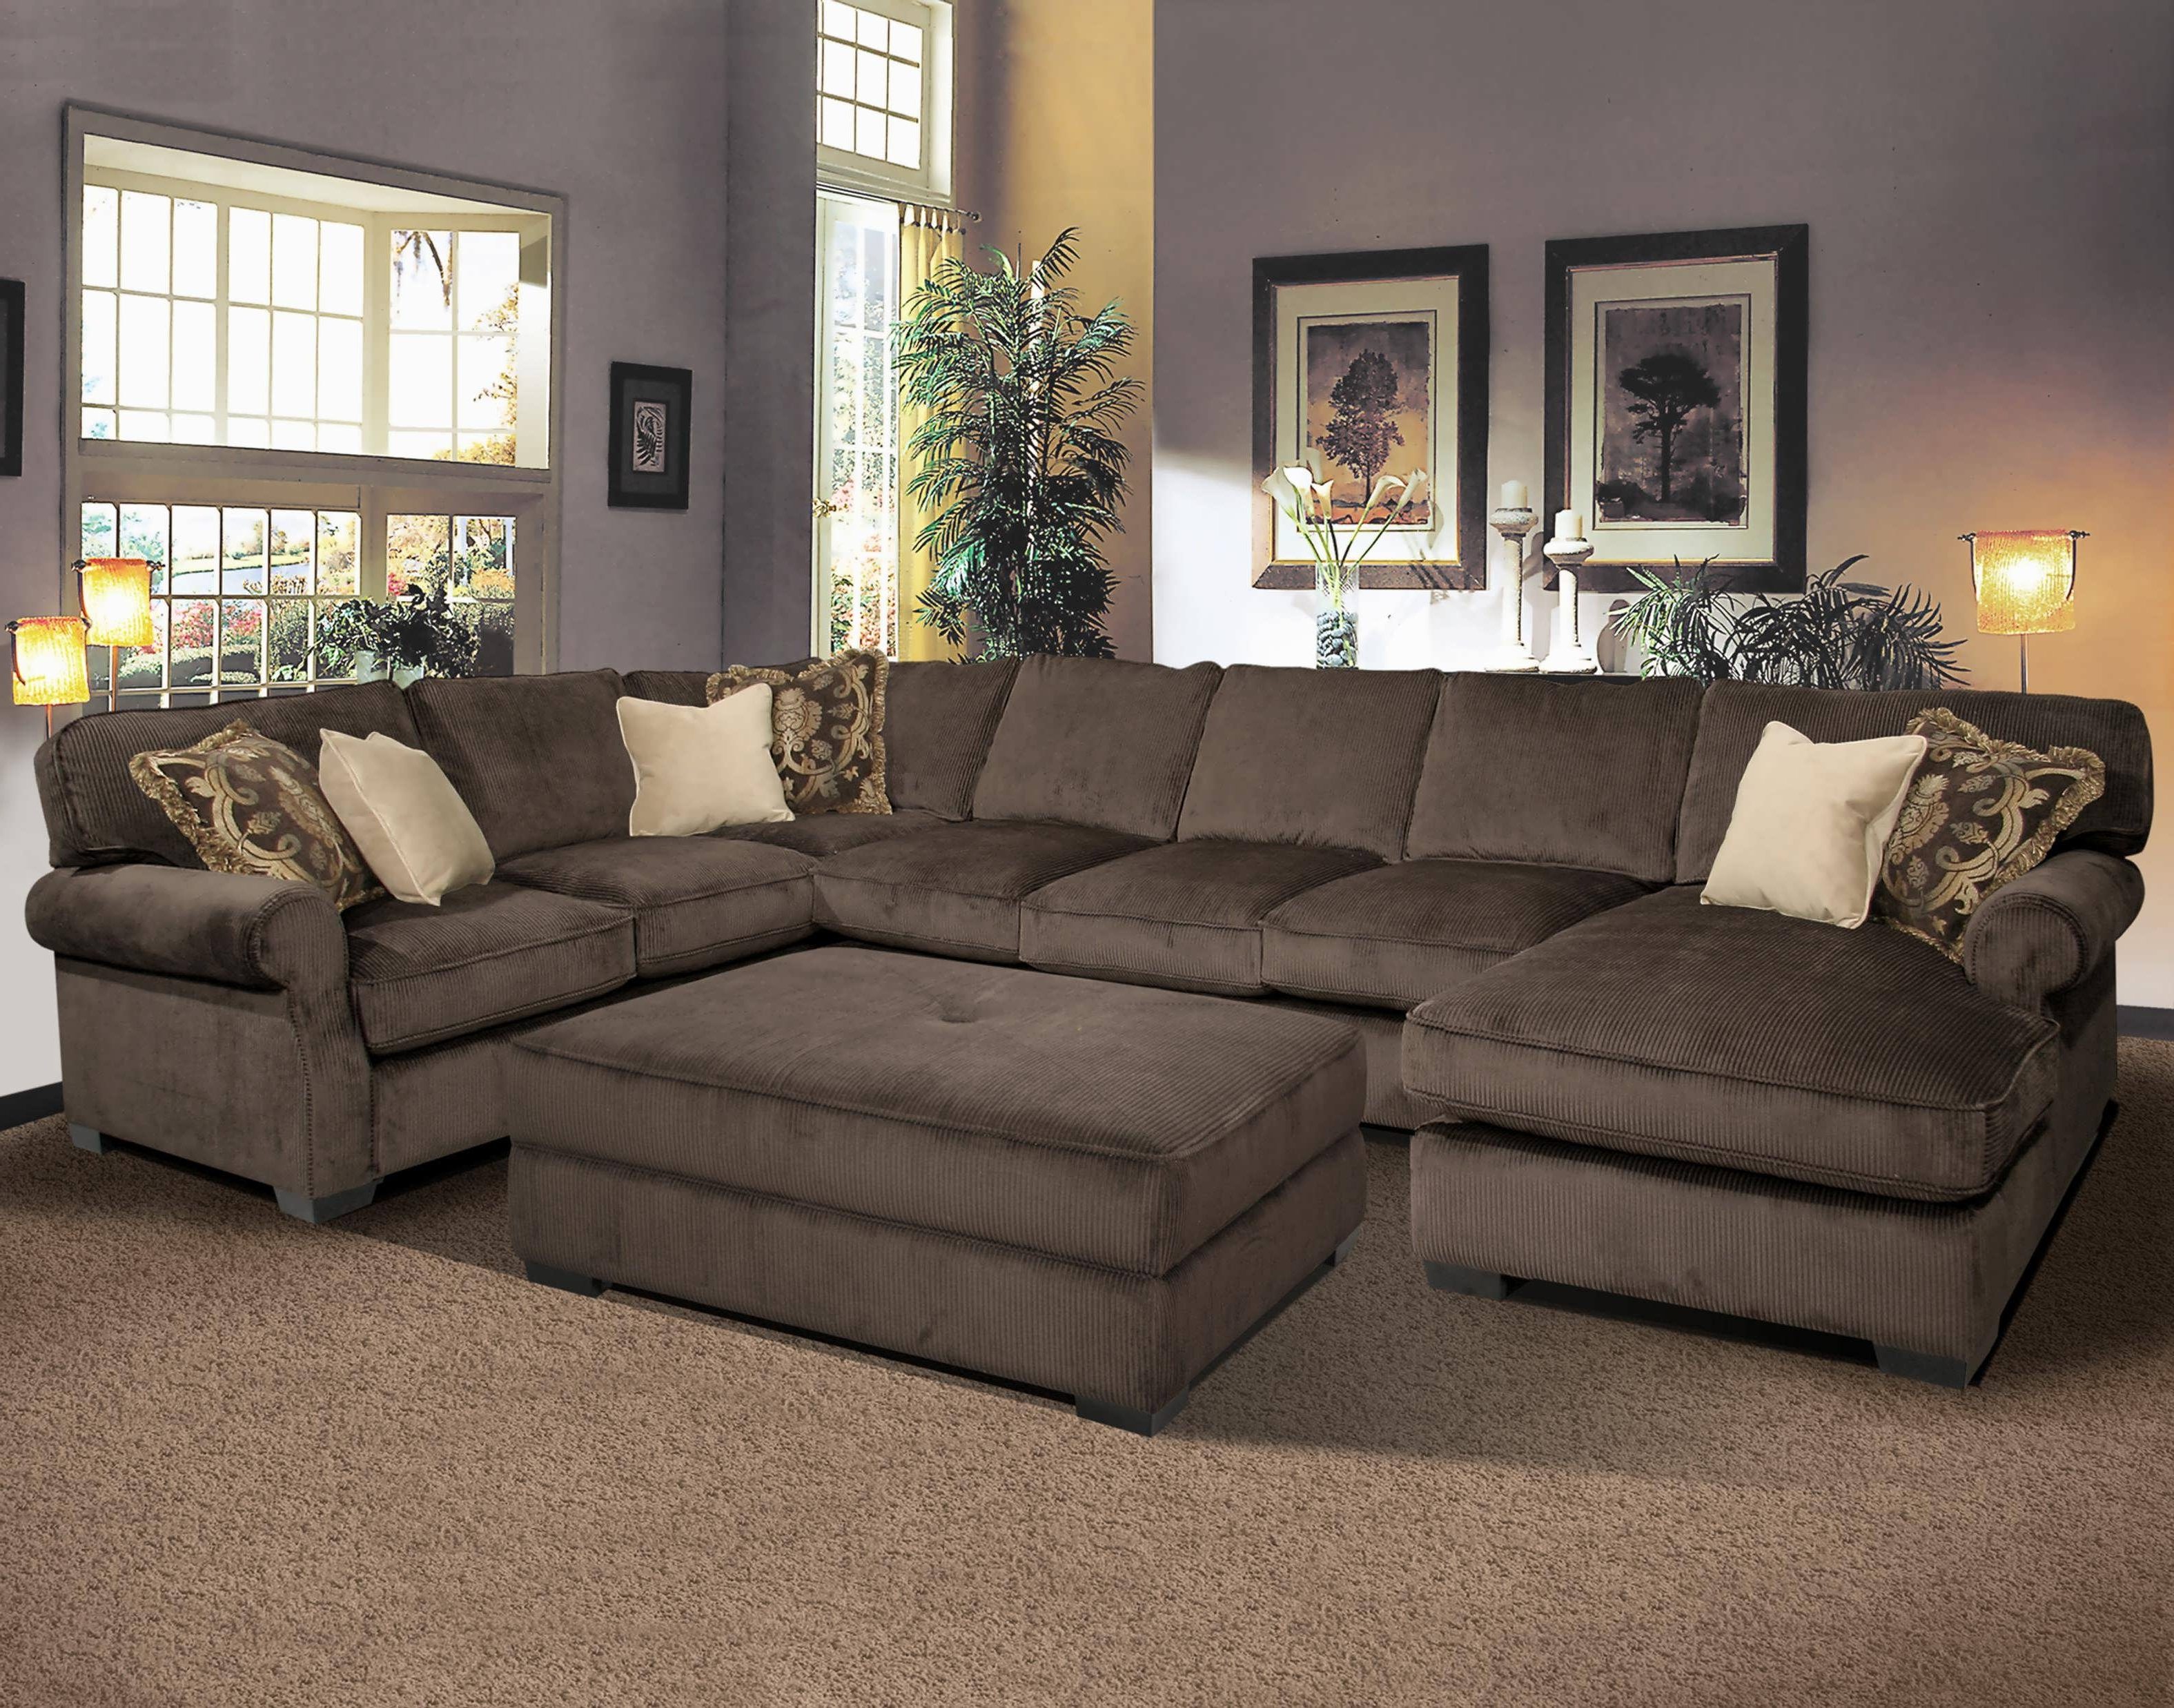 Trendy Sofa : Small Sectional With Chaise Gray Leather Sectional Blue Pertaining To Large Chaises (View 13 of 15)